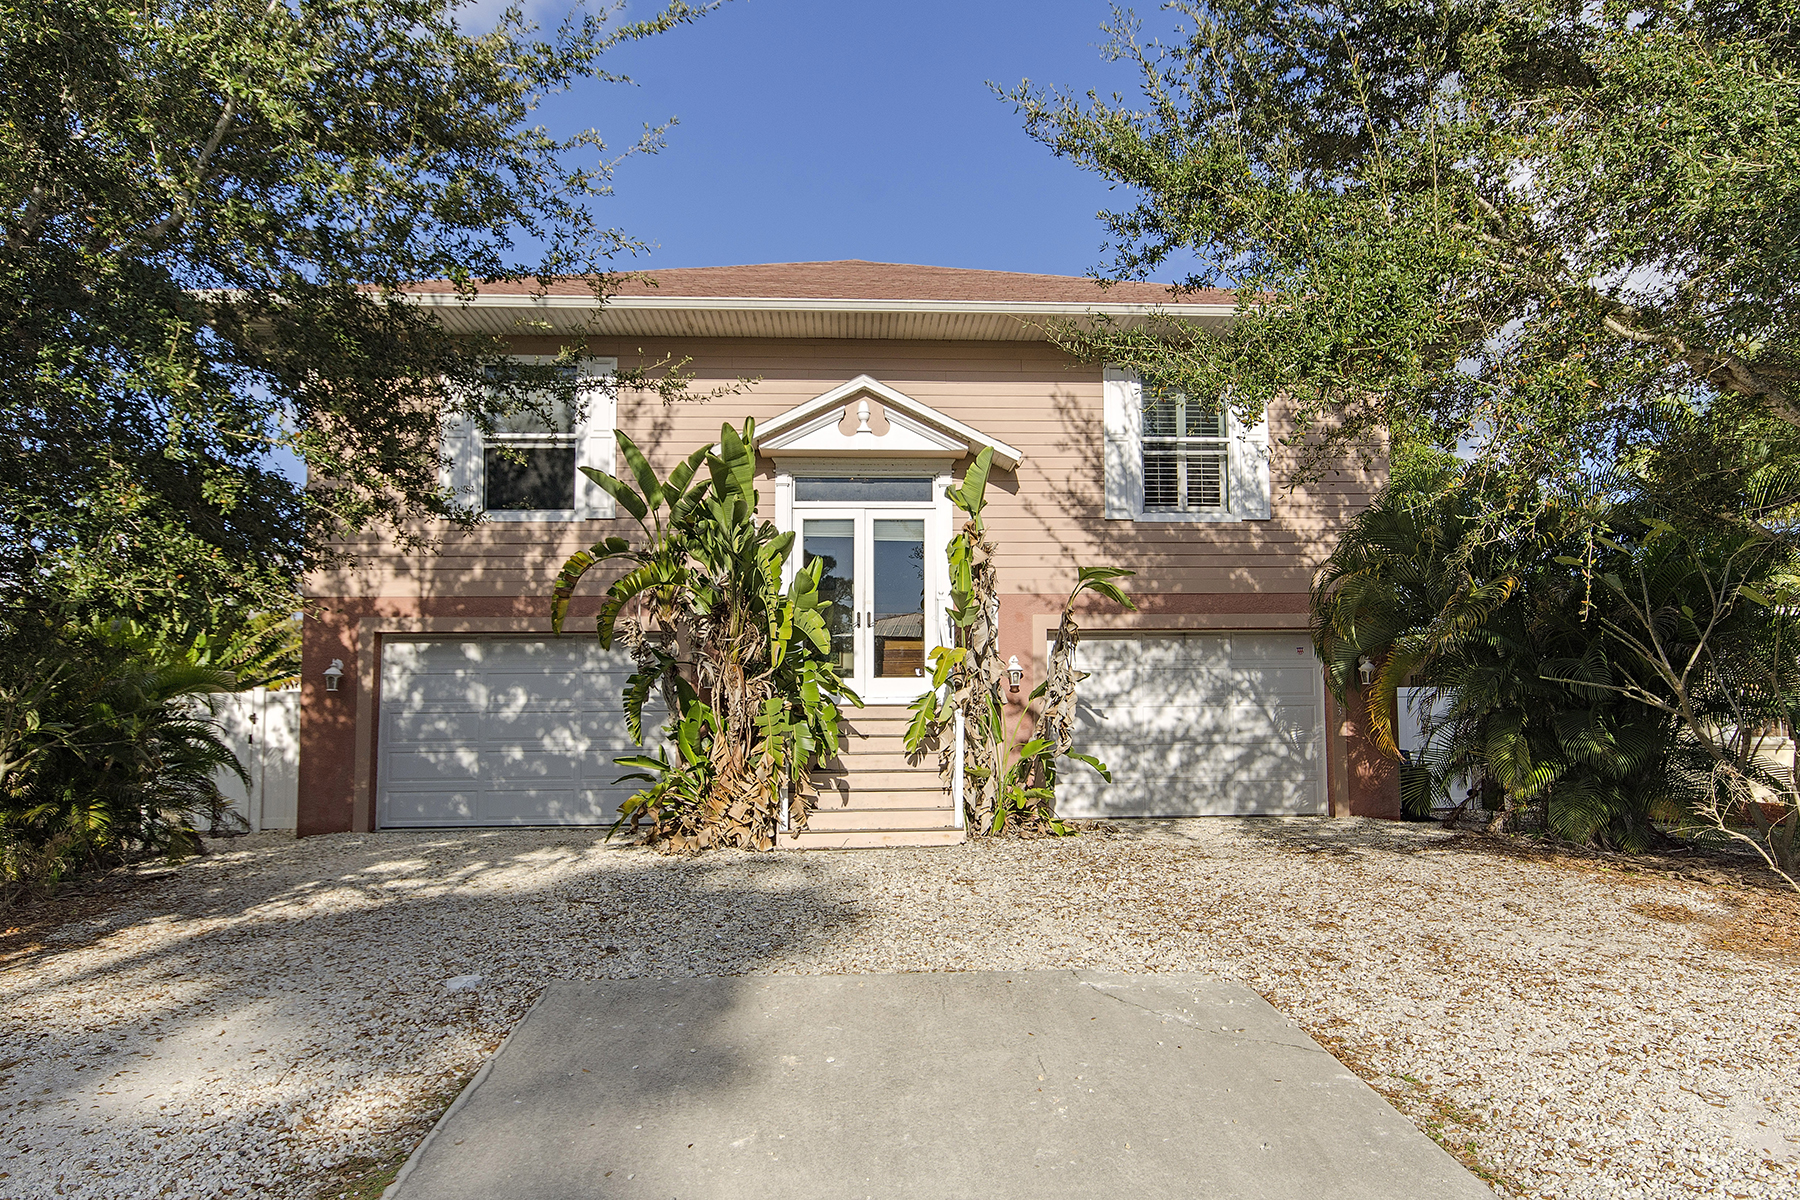 Single Family Home for Sale at INOMAH 2383 Washington Ave Naples, Florida, 34112 United States